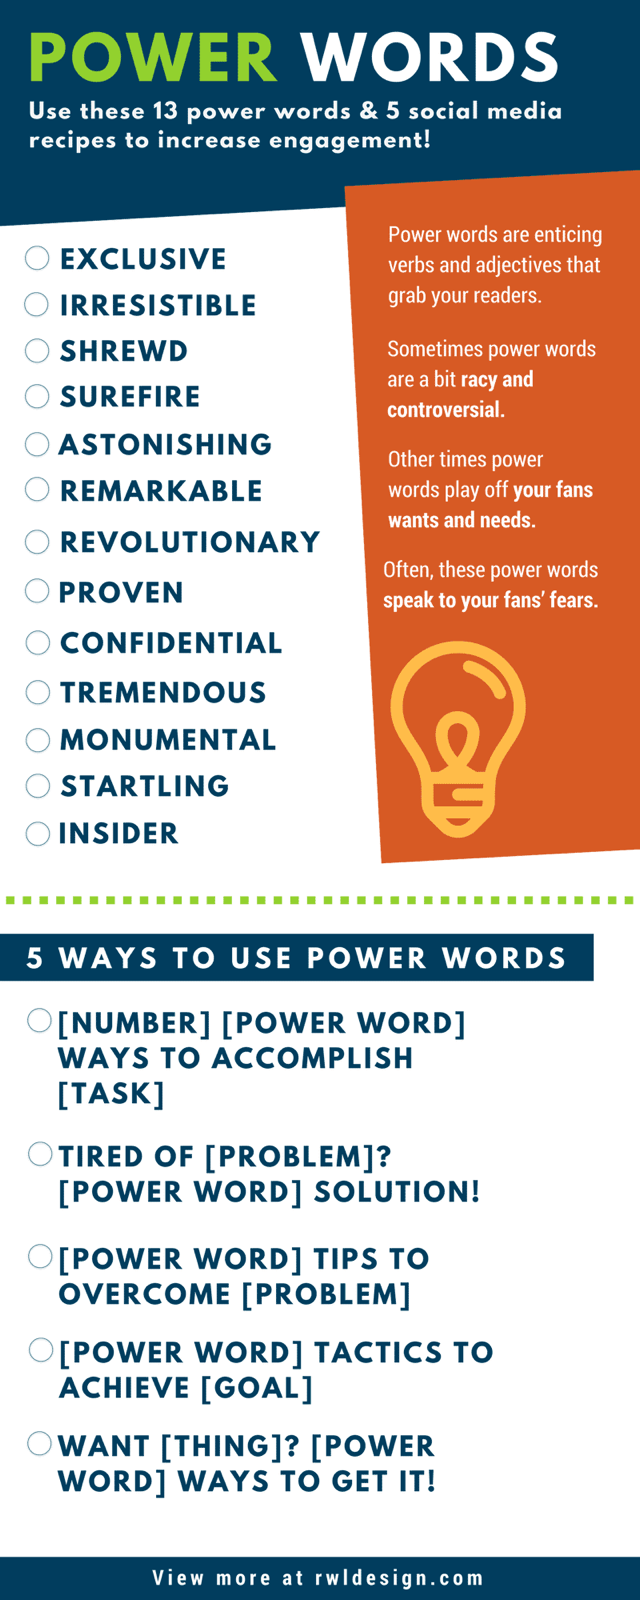 13 Power Words and 5 Ways to Use Them